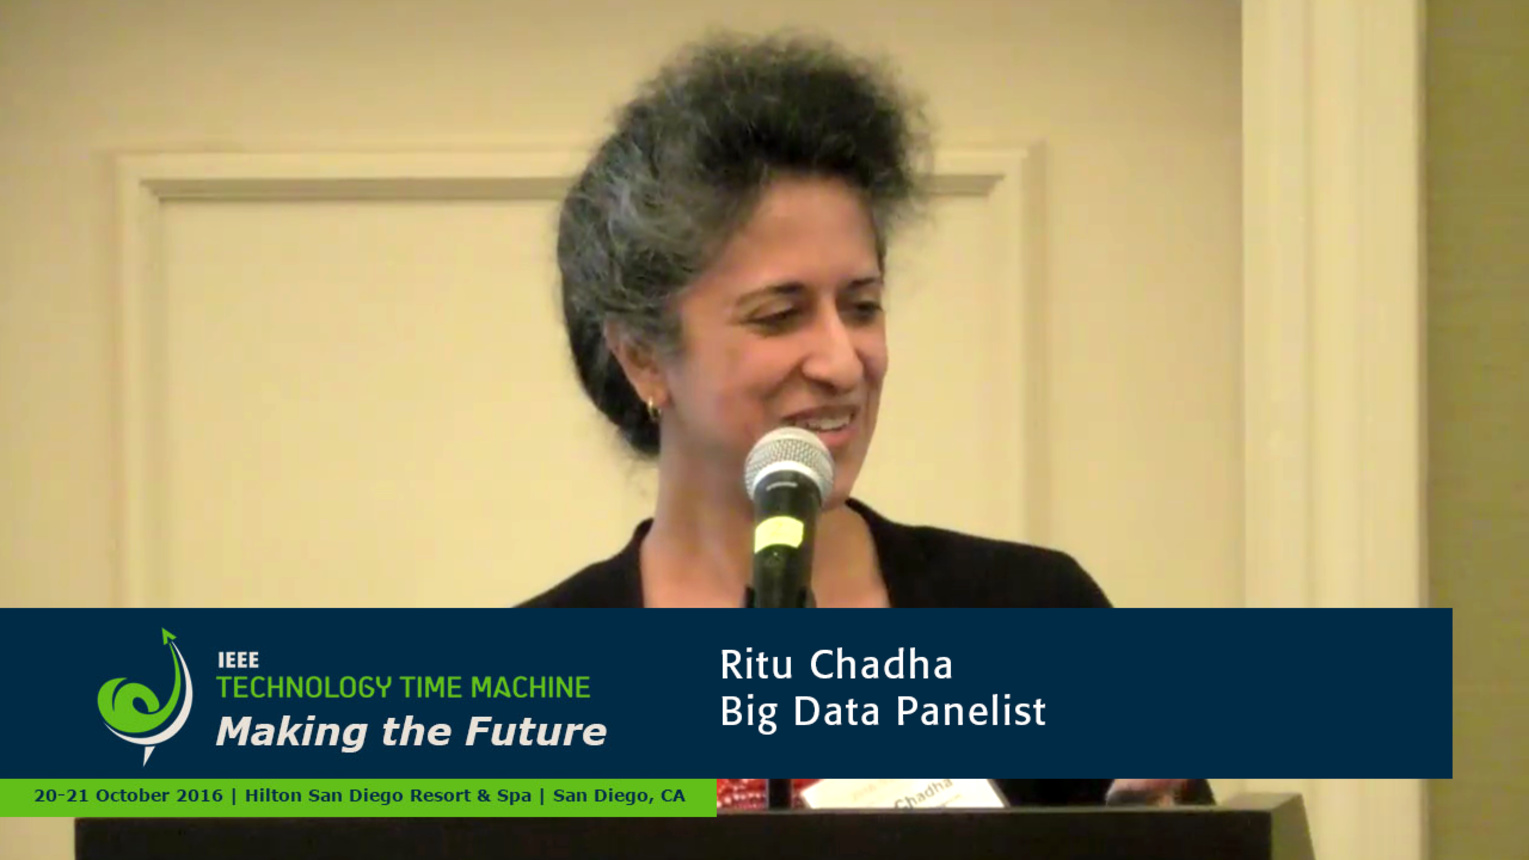 Big Data Panelist - Ritu Chadha: 2016 Technology Time Machine